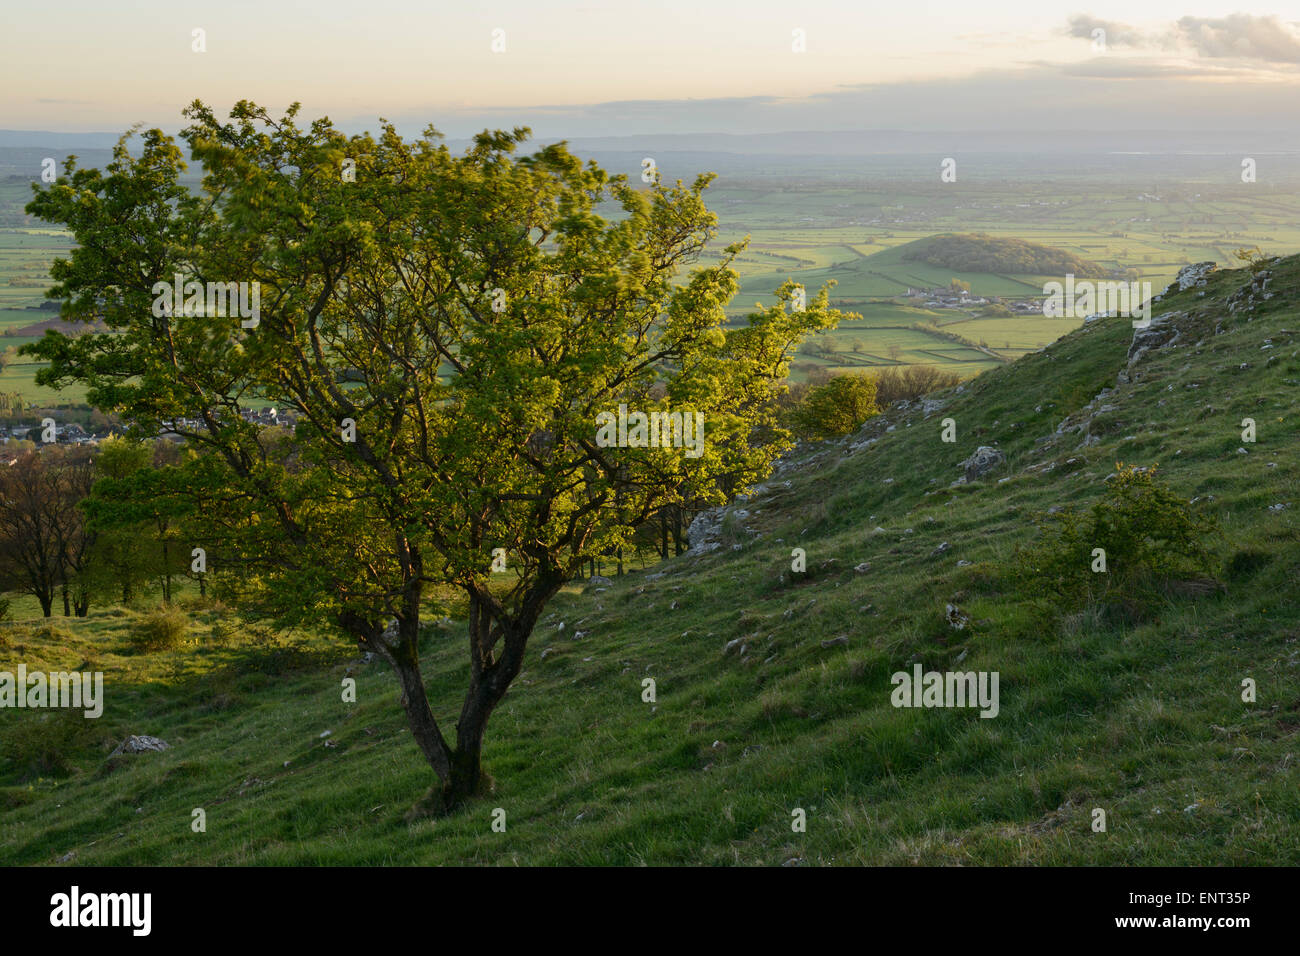 A lone Hawthorn tree on the side of a hill at Draycott Sleights, Somerset. - Stock Image